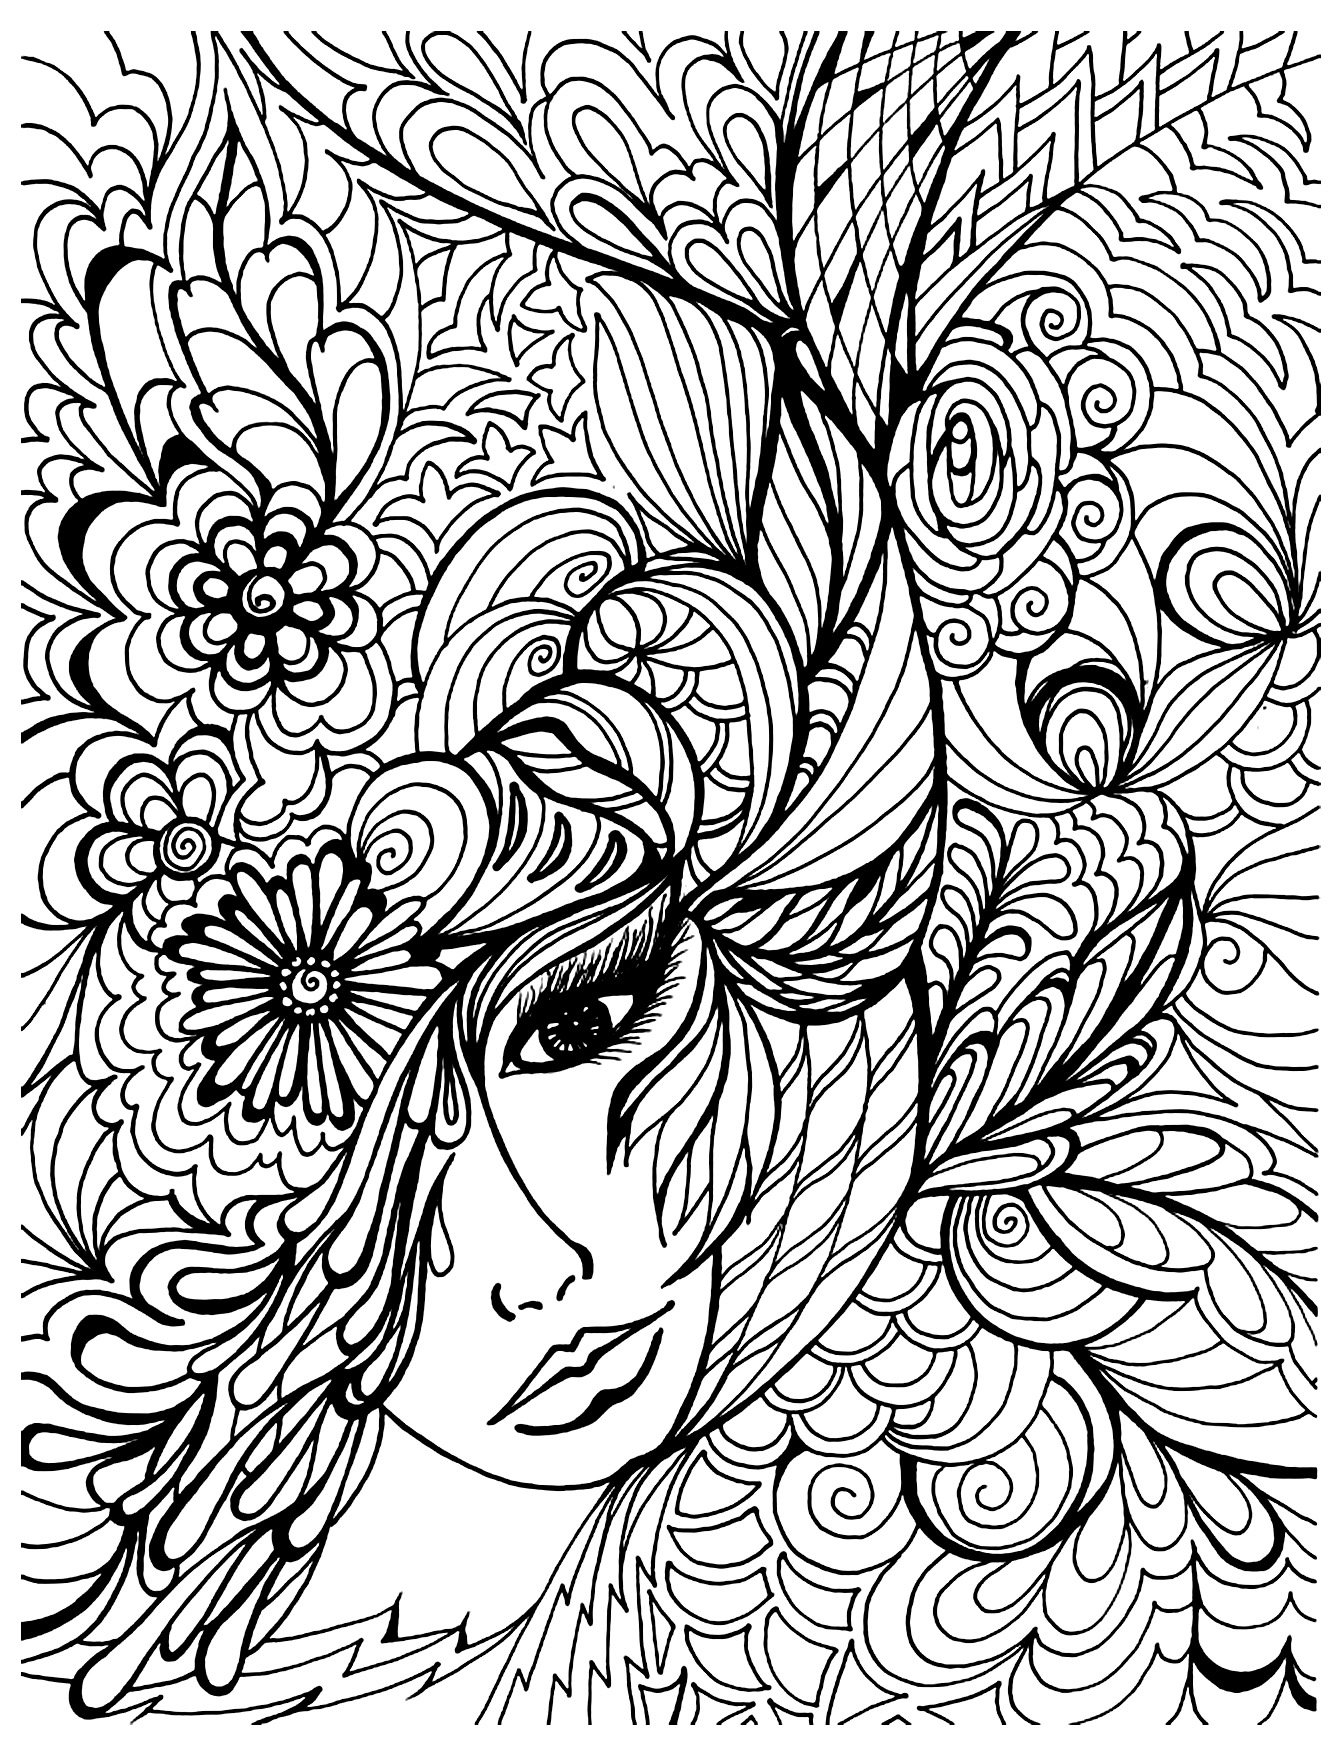 Anti stress colouring pages for adults - Face Vegetation Zen And Anti Stress Coloring Pages For Adults Justcolor